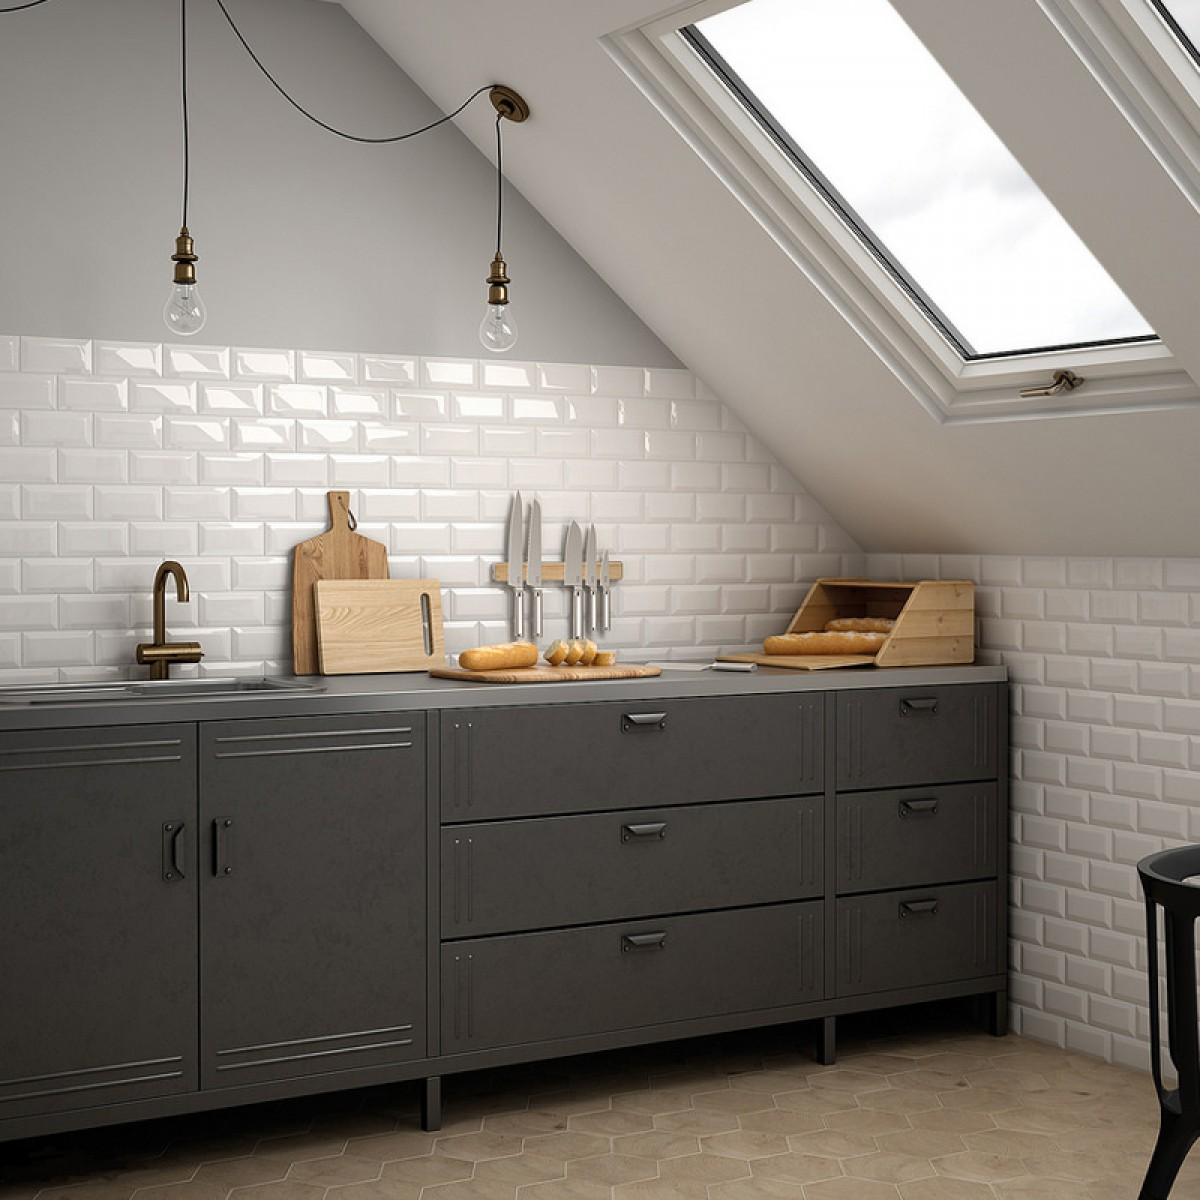 metro tiles  the modern classic  sustainable kitchens - dark grey industrial freestanding kitchen with plain white bevel edged metrotile spalshback grey wall